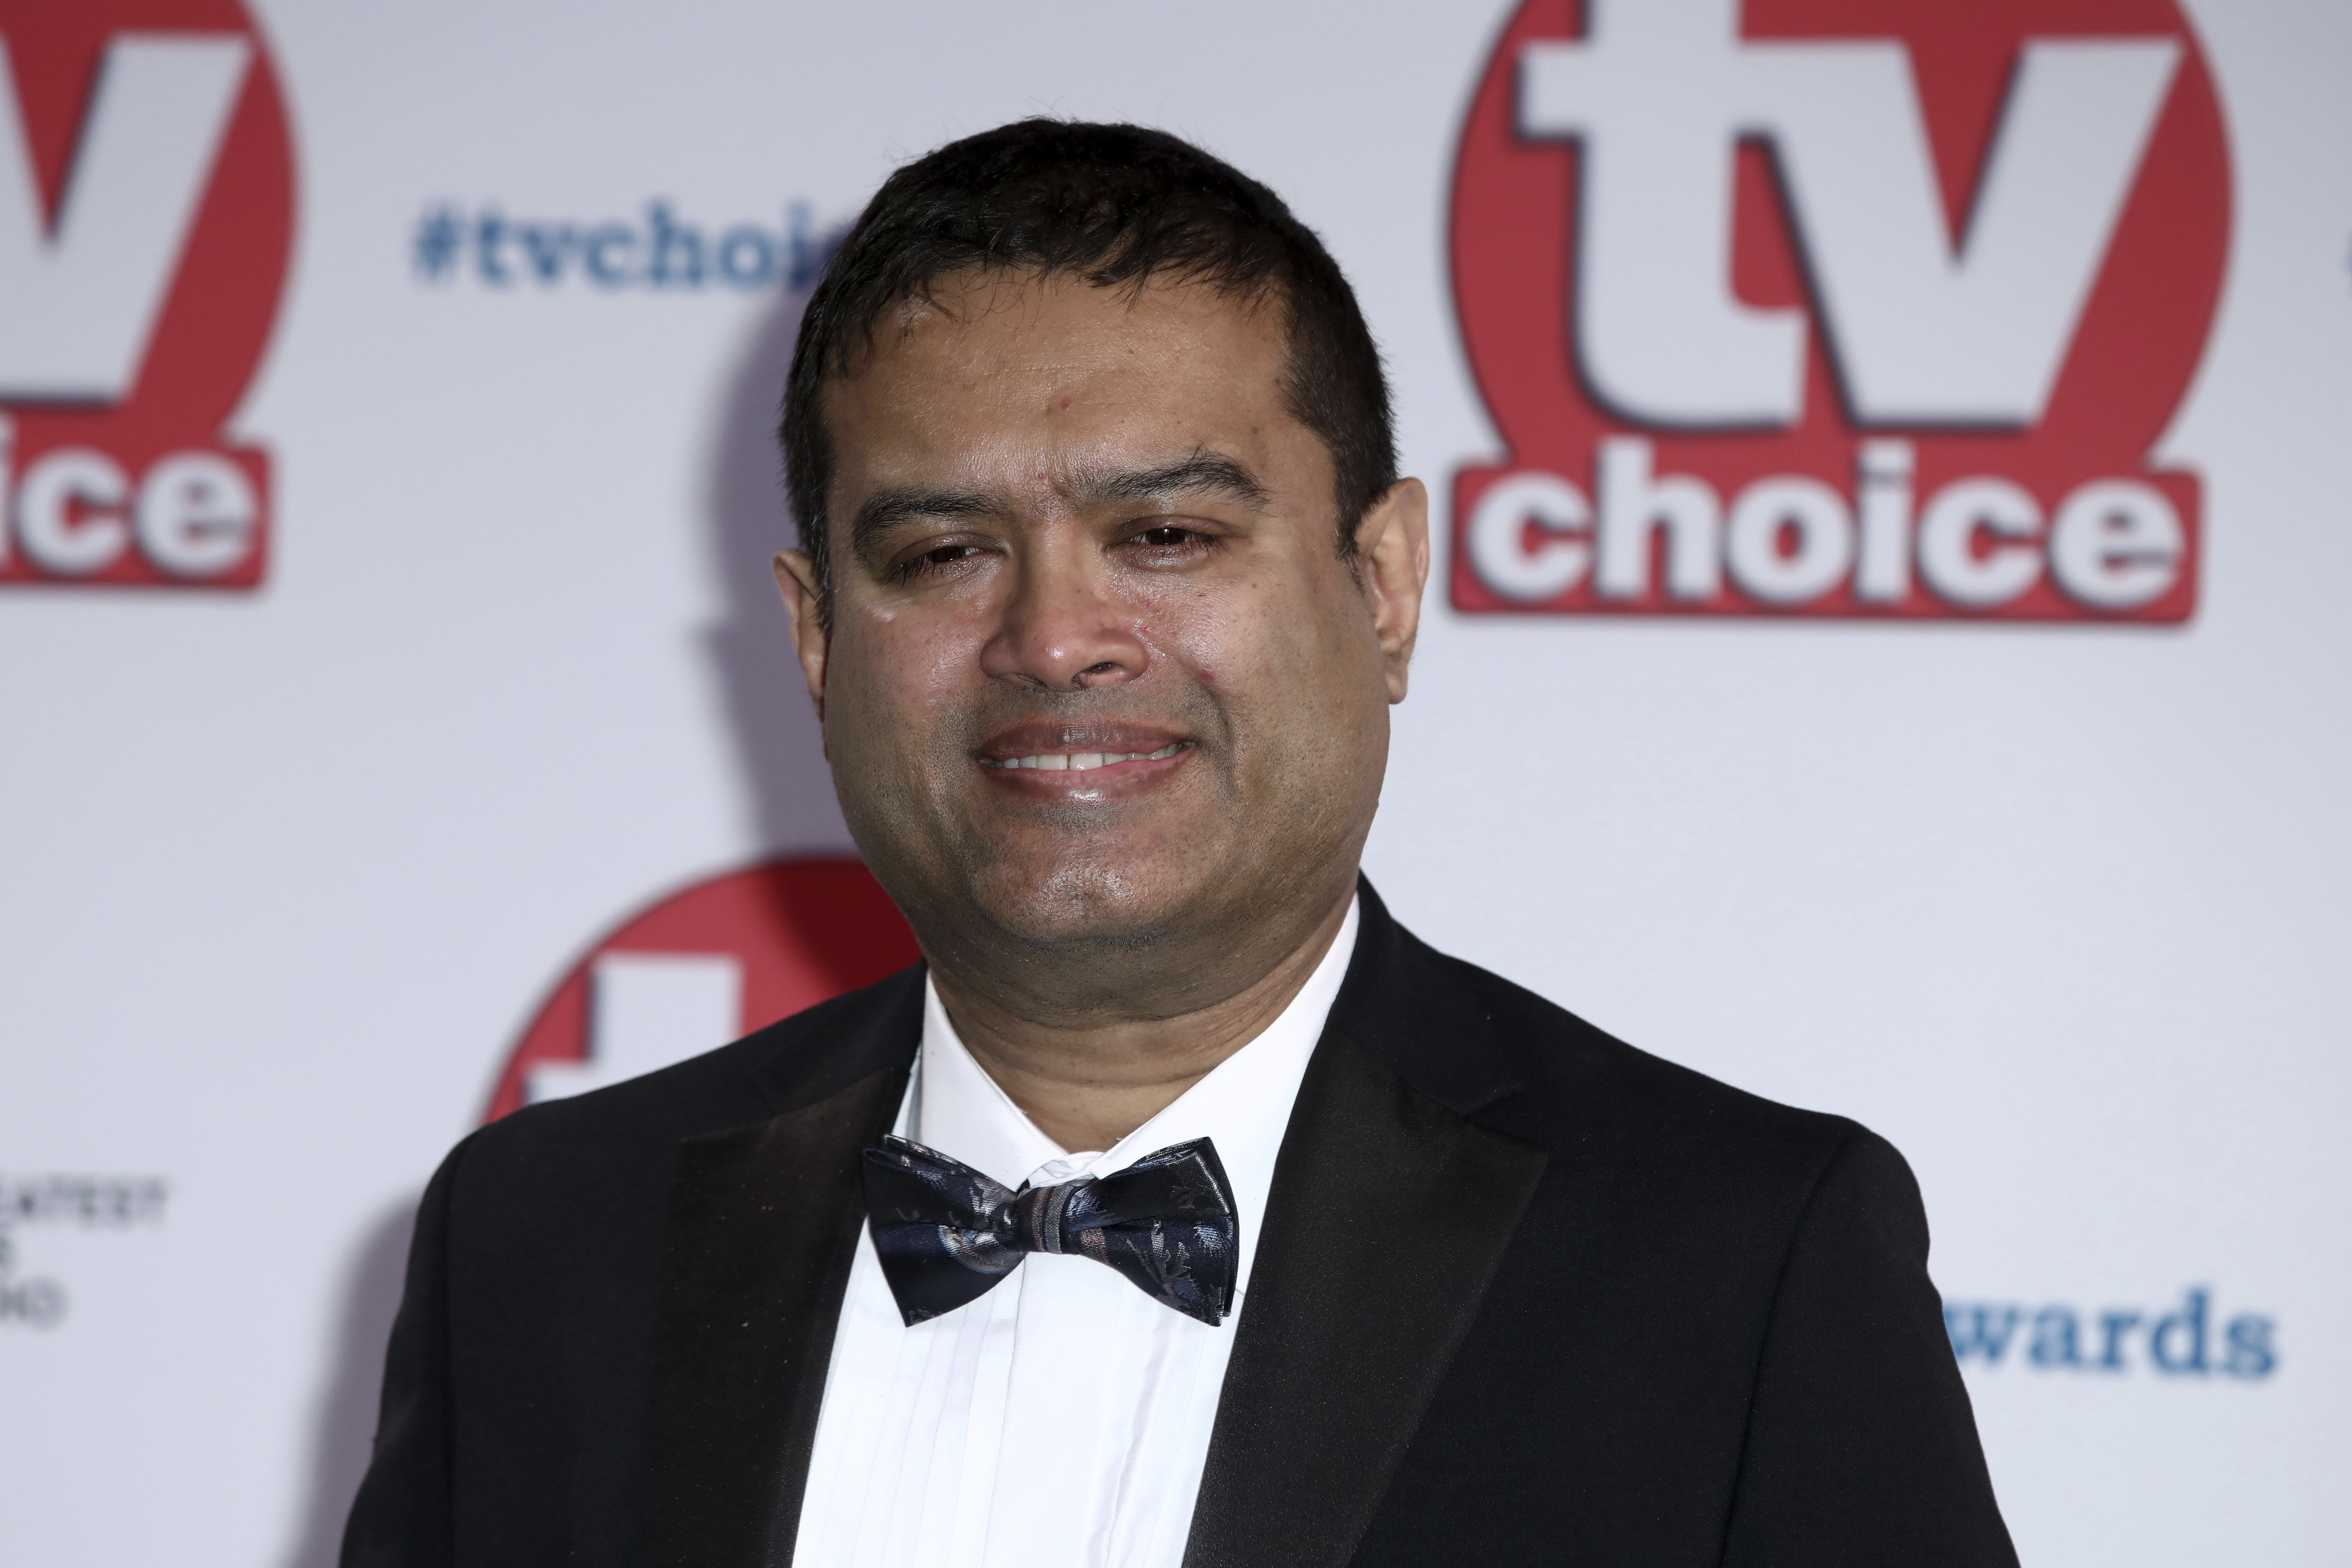 TV personality Paul Sinha poses for photographers on arrival at the TV Choice Awards in central London on Monday, Sept. 9, 2019. (Photo by Grant Pollard/Invision/AP)